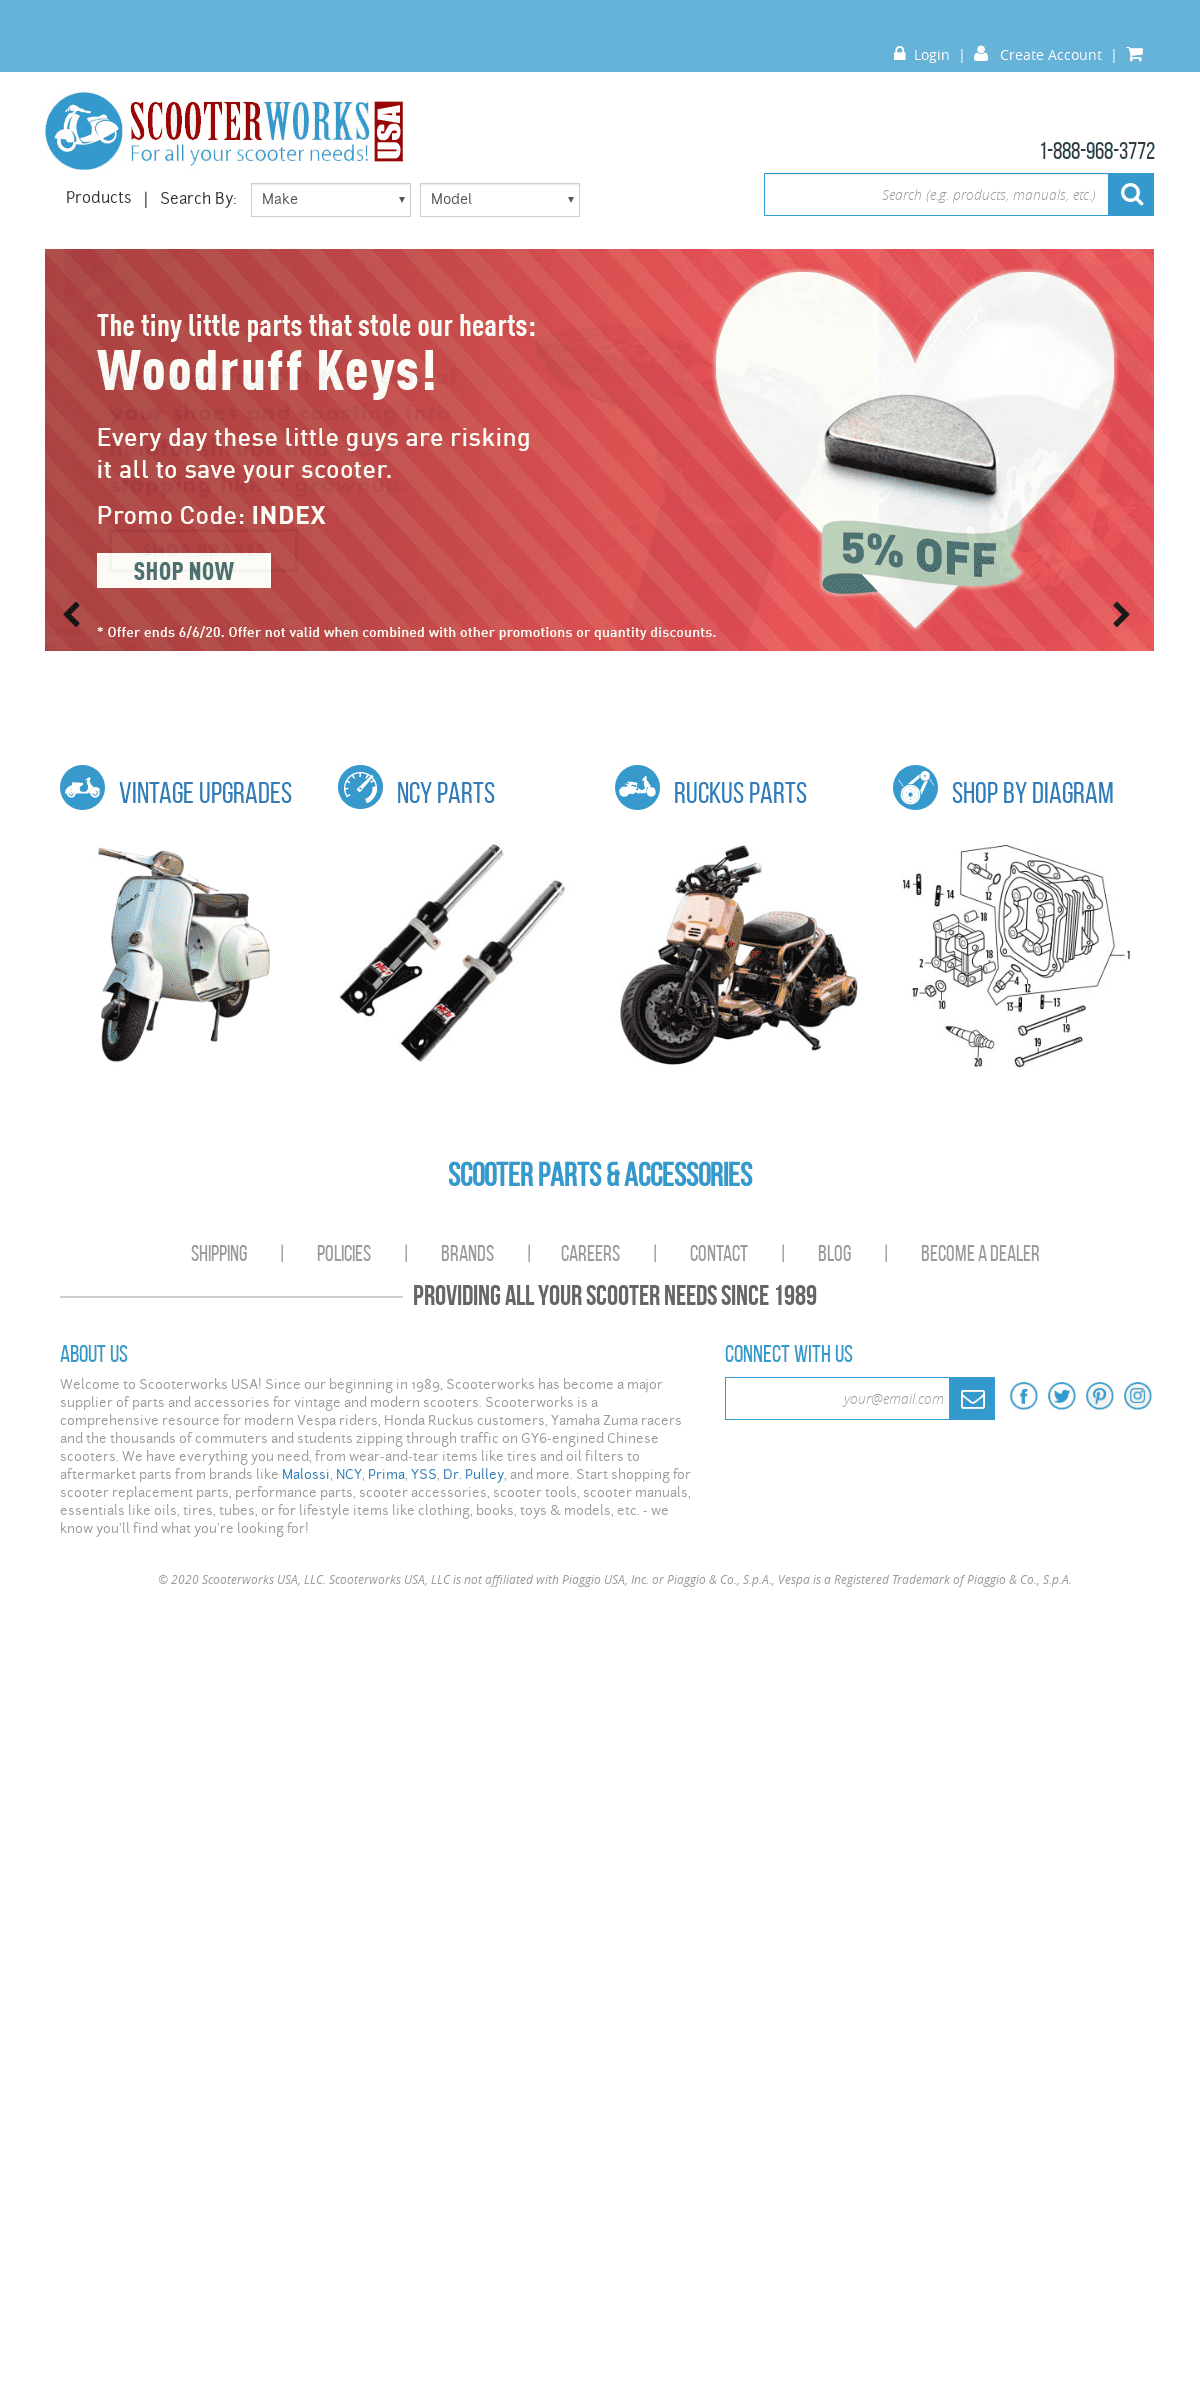 Scooter Parts & Accessories - Scooter Performance & Stock Parts - Scooterworks USA